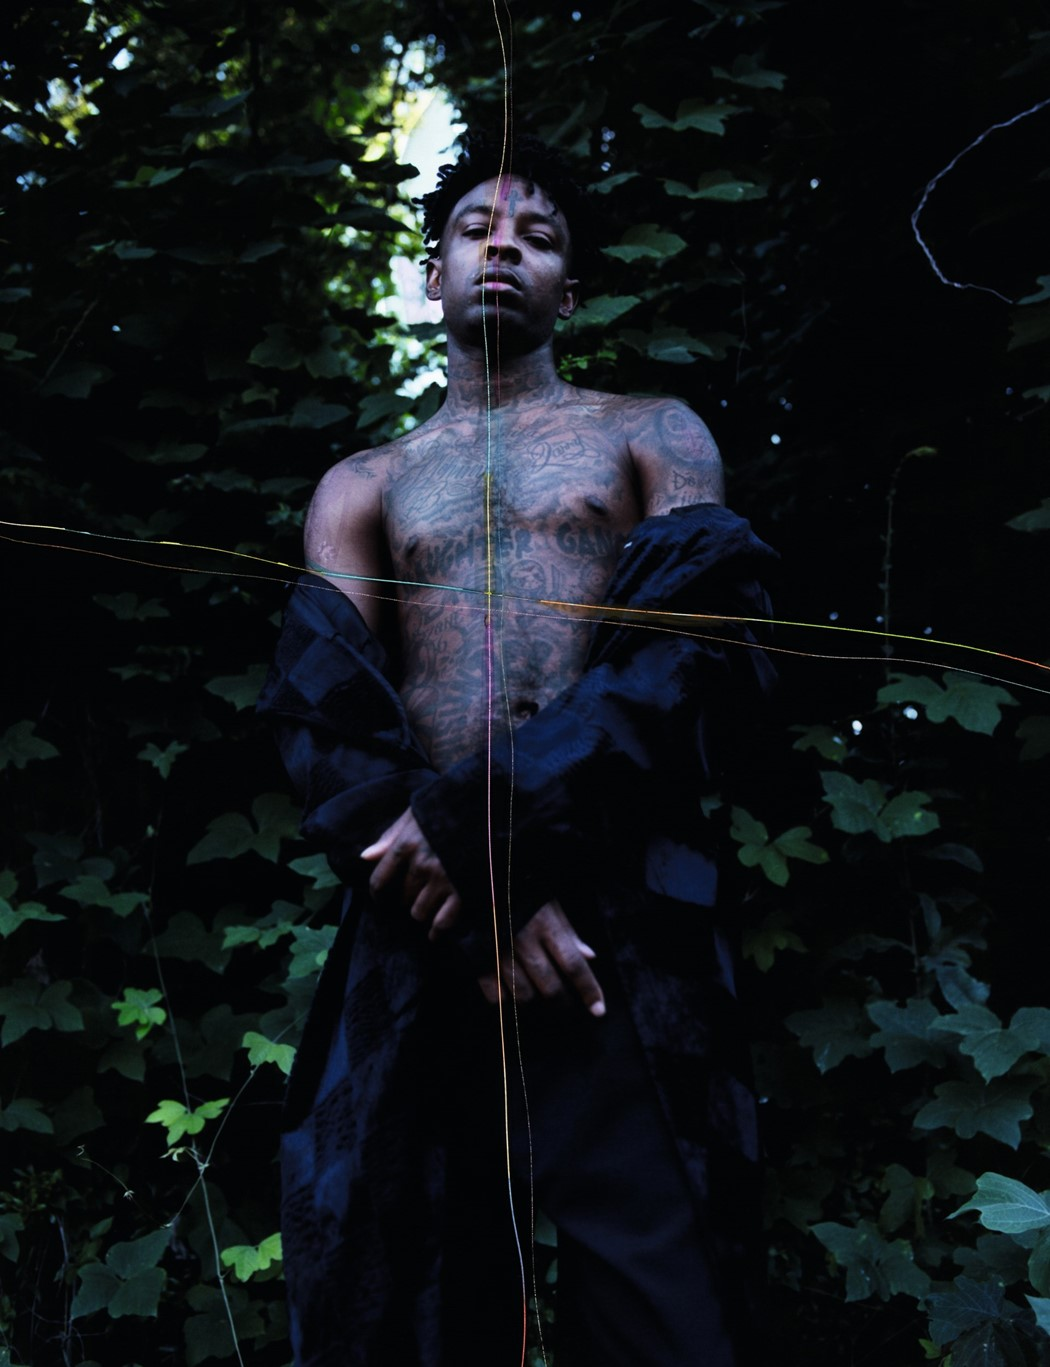 21 Savage Another Man Harley Weir 2019 cover fashion style